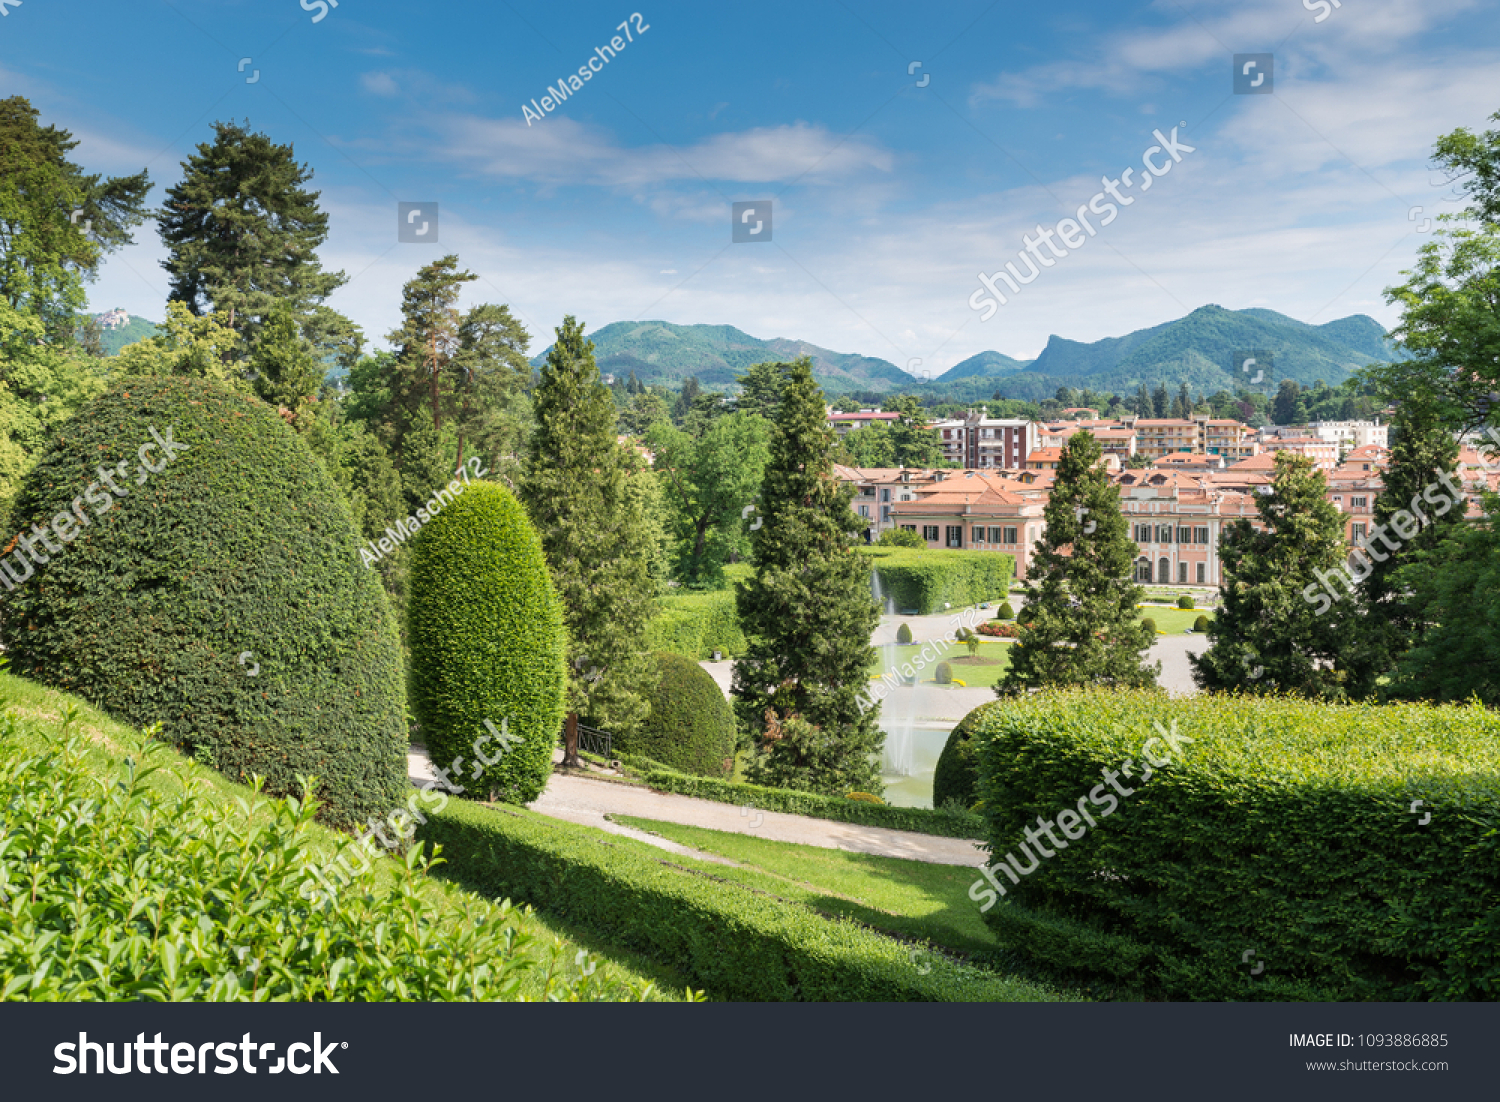 Typical Famous Italian Garden Giardino Allitaliana Stock Photo Edit Now 1093886885